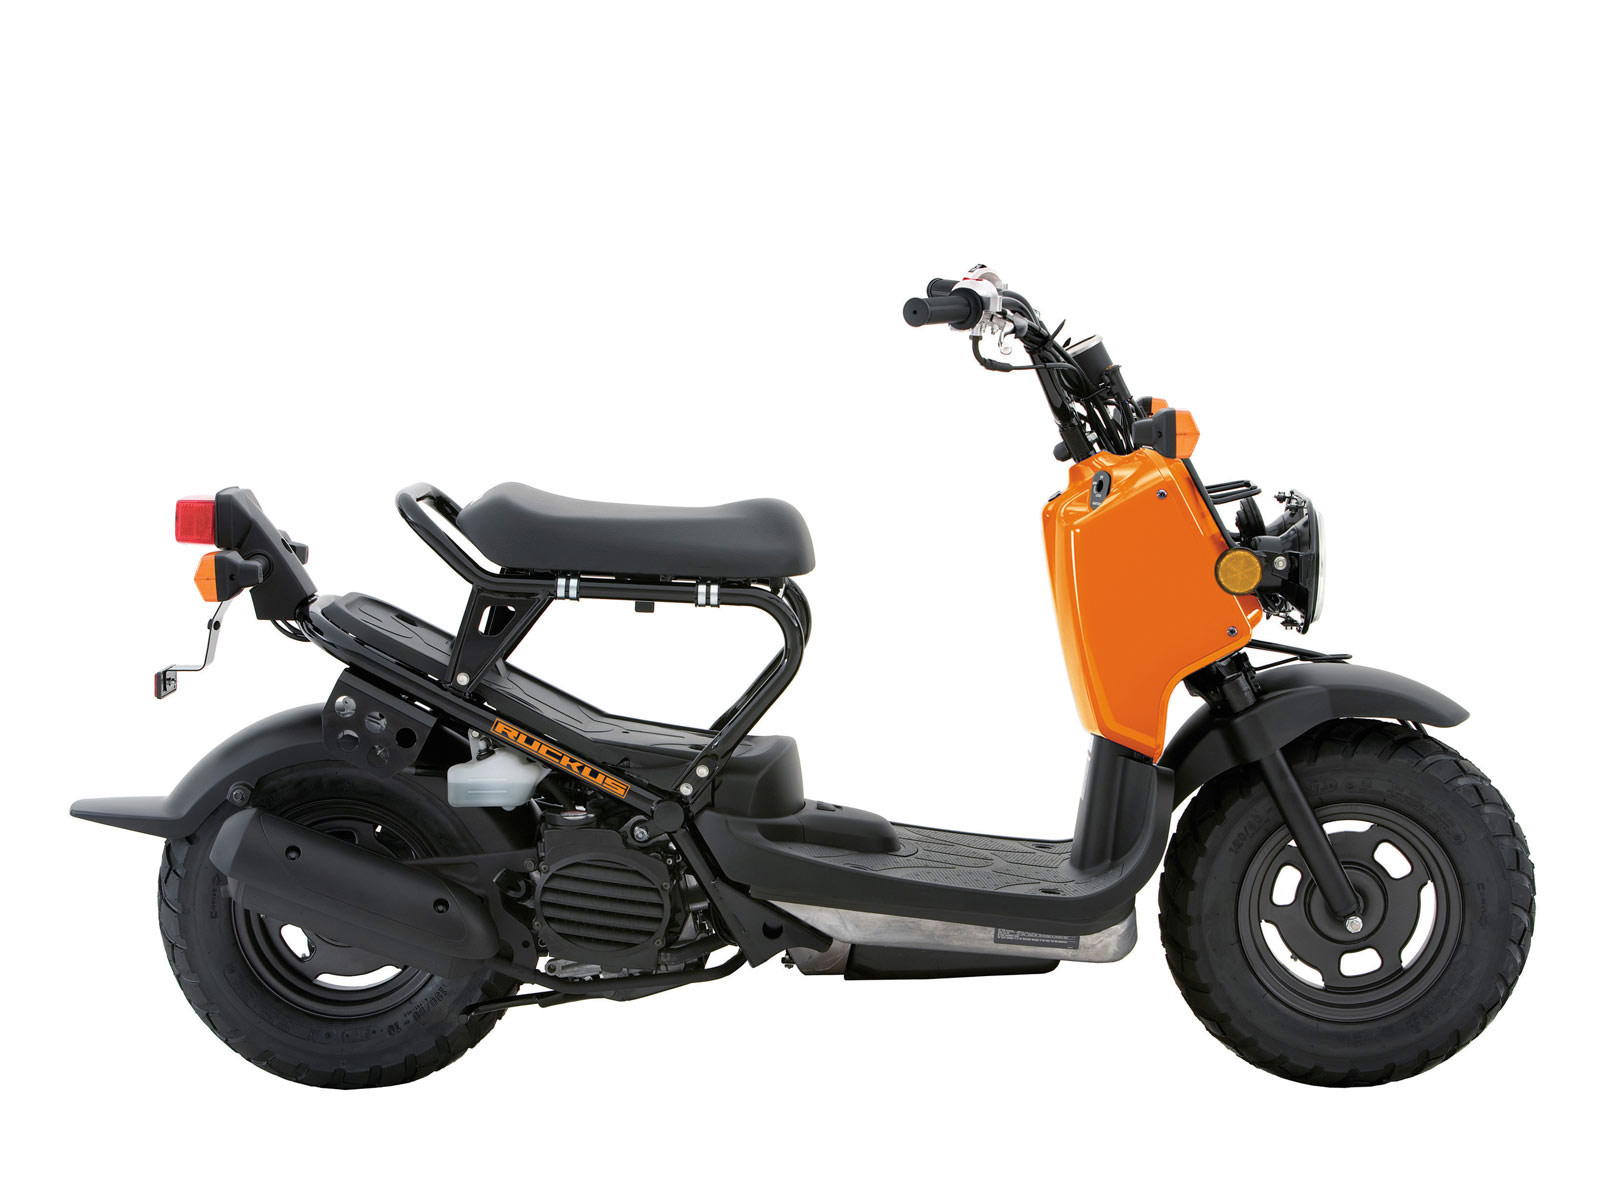 2011 Honda Ruckus Scooter Pictures Insurance Information